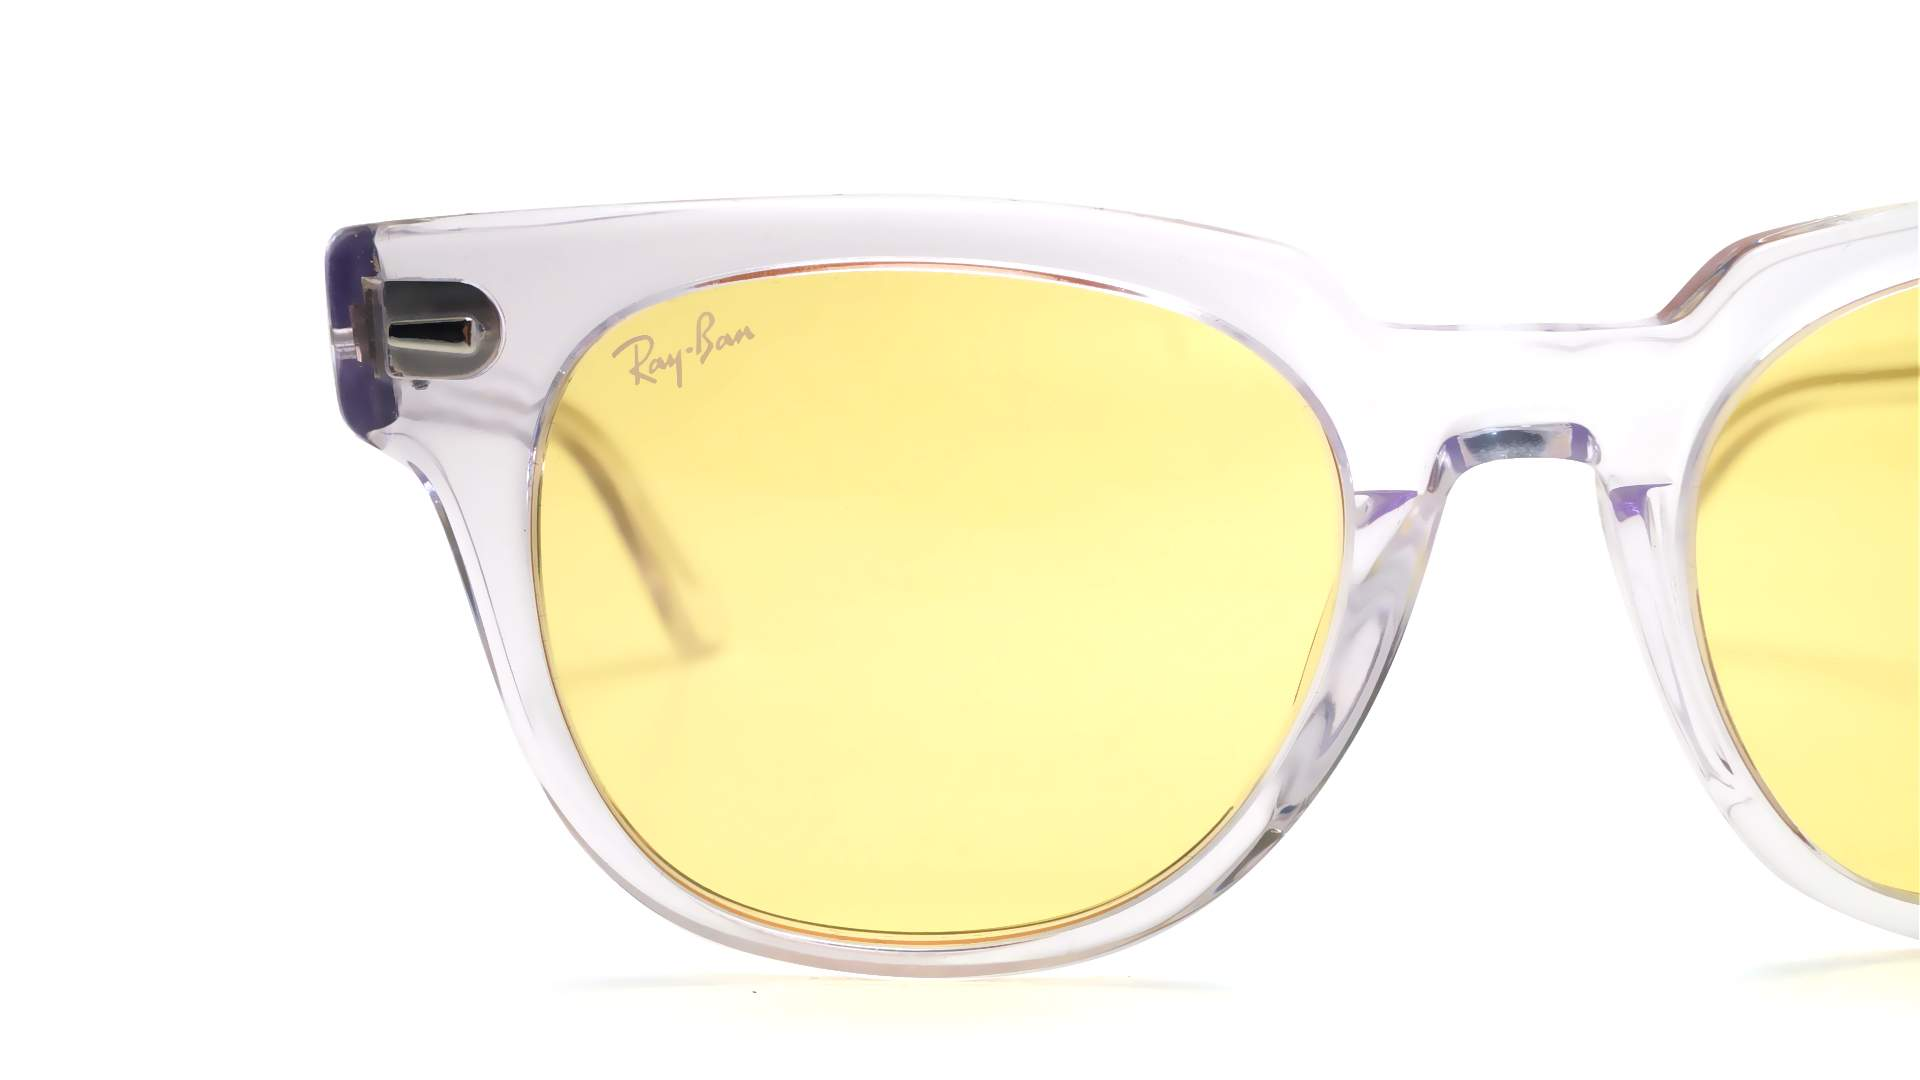 c187e3df03d8bd Sunglasses Ray-Ban Meteor Evolve Clear RB2168 912 4A 50-20 Medium  Photochromic